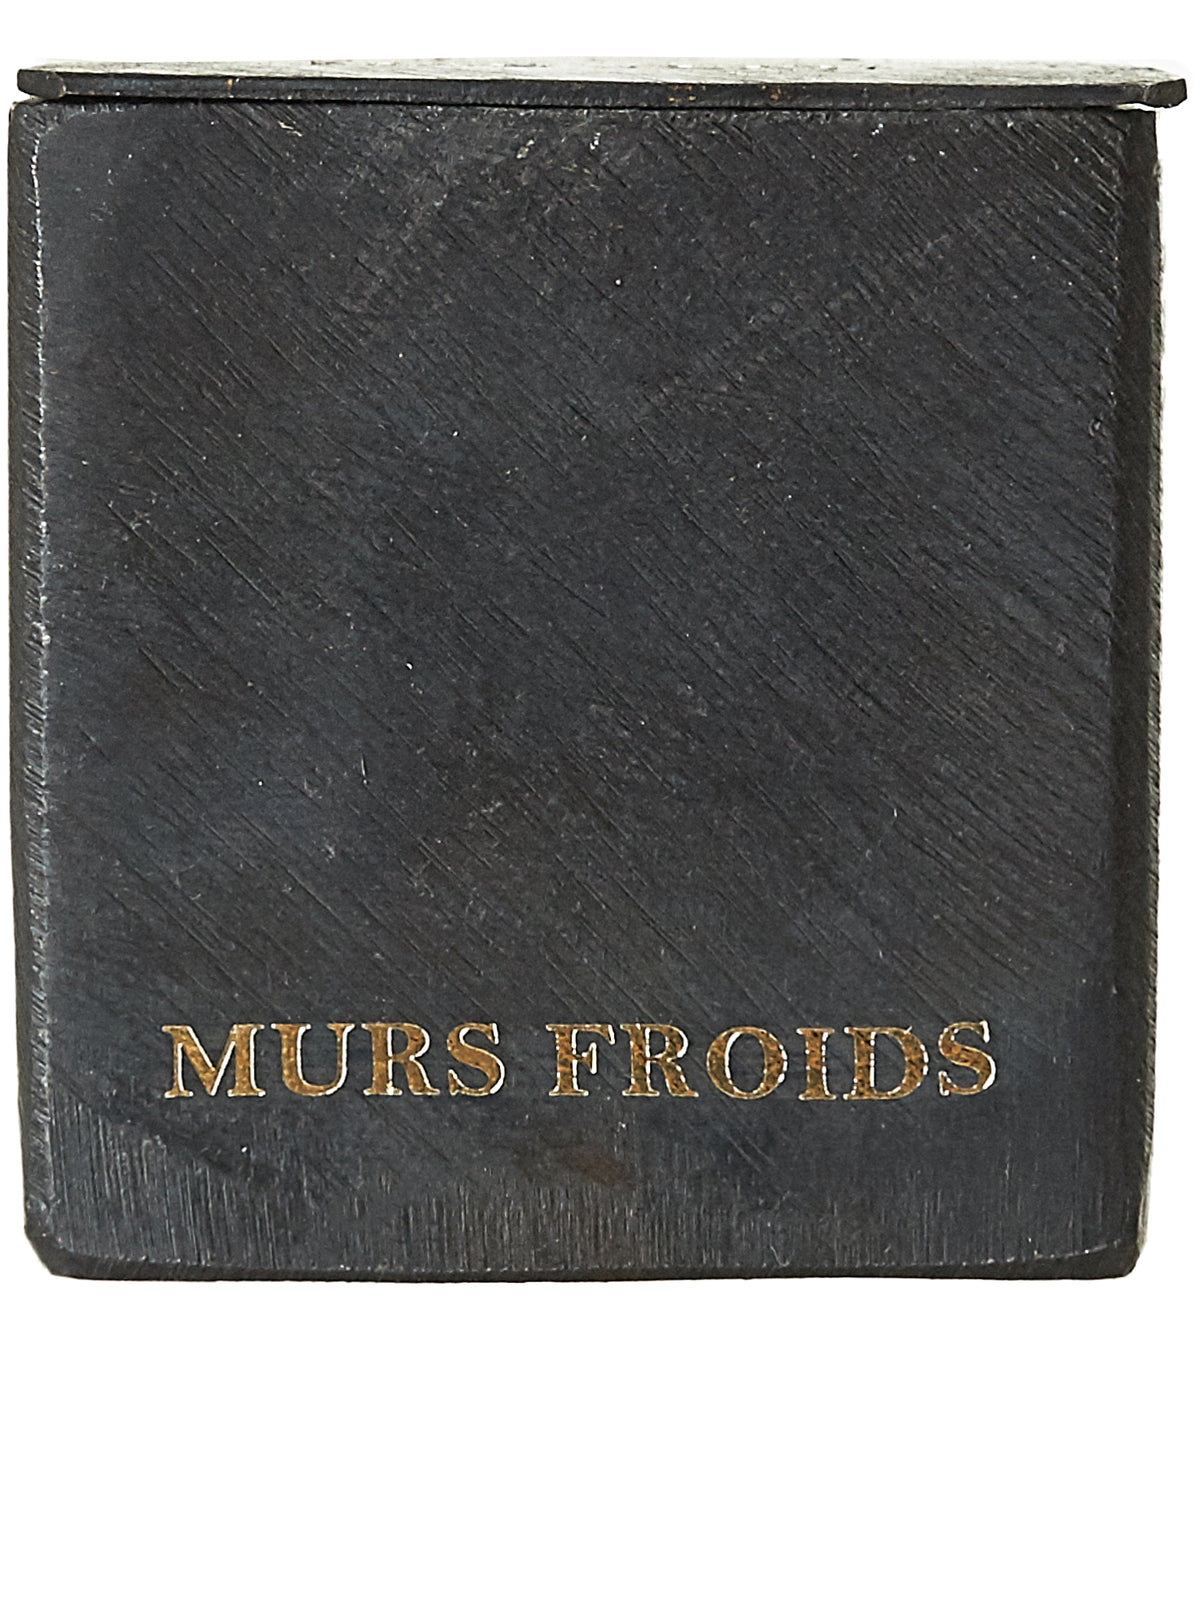 'Murs Froid' Short Block Candle (ML-BCMN-MF-MURS-FROID-5X5)